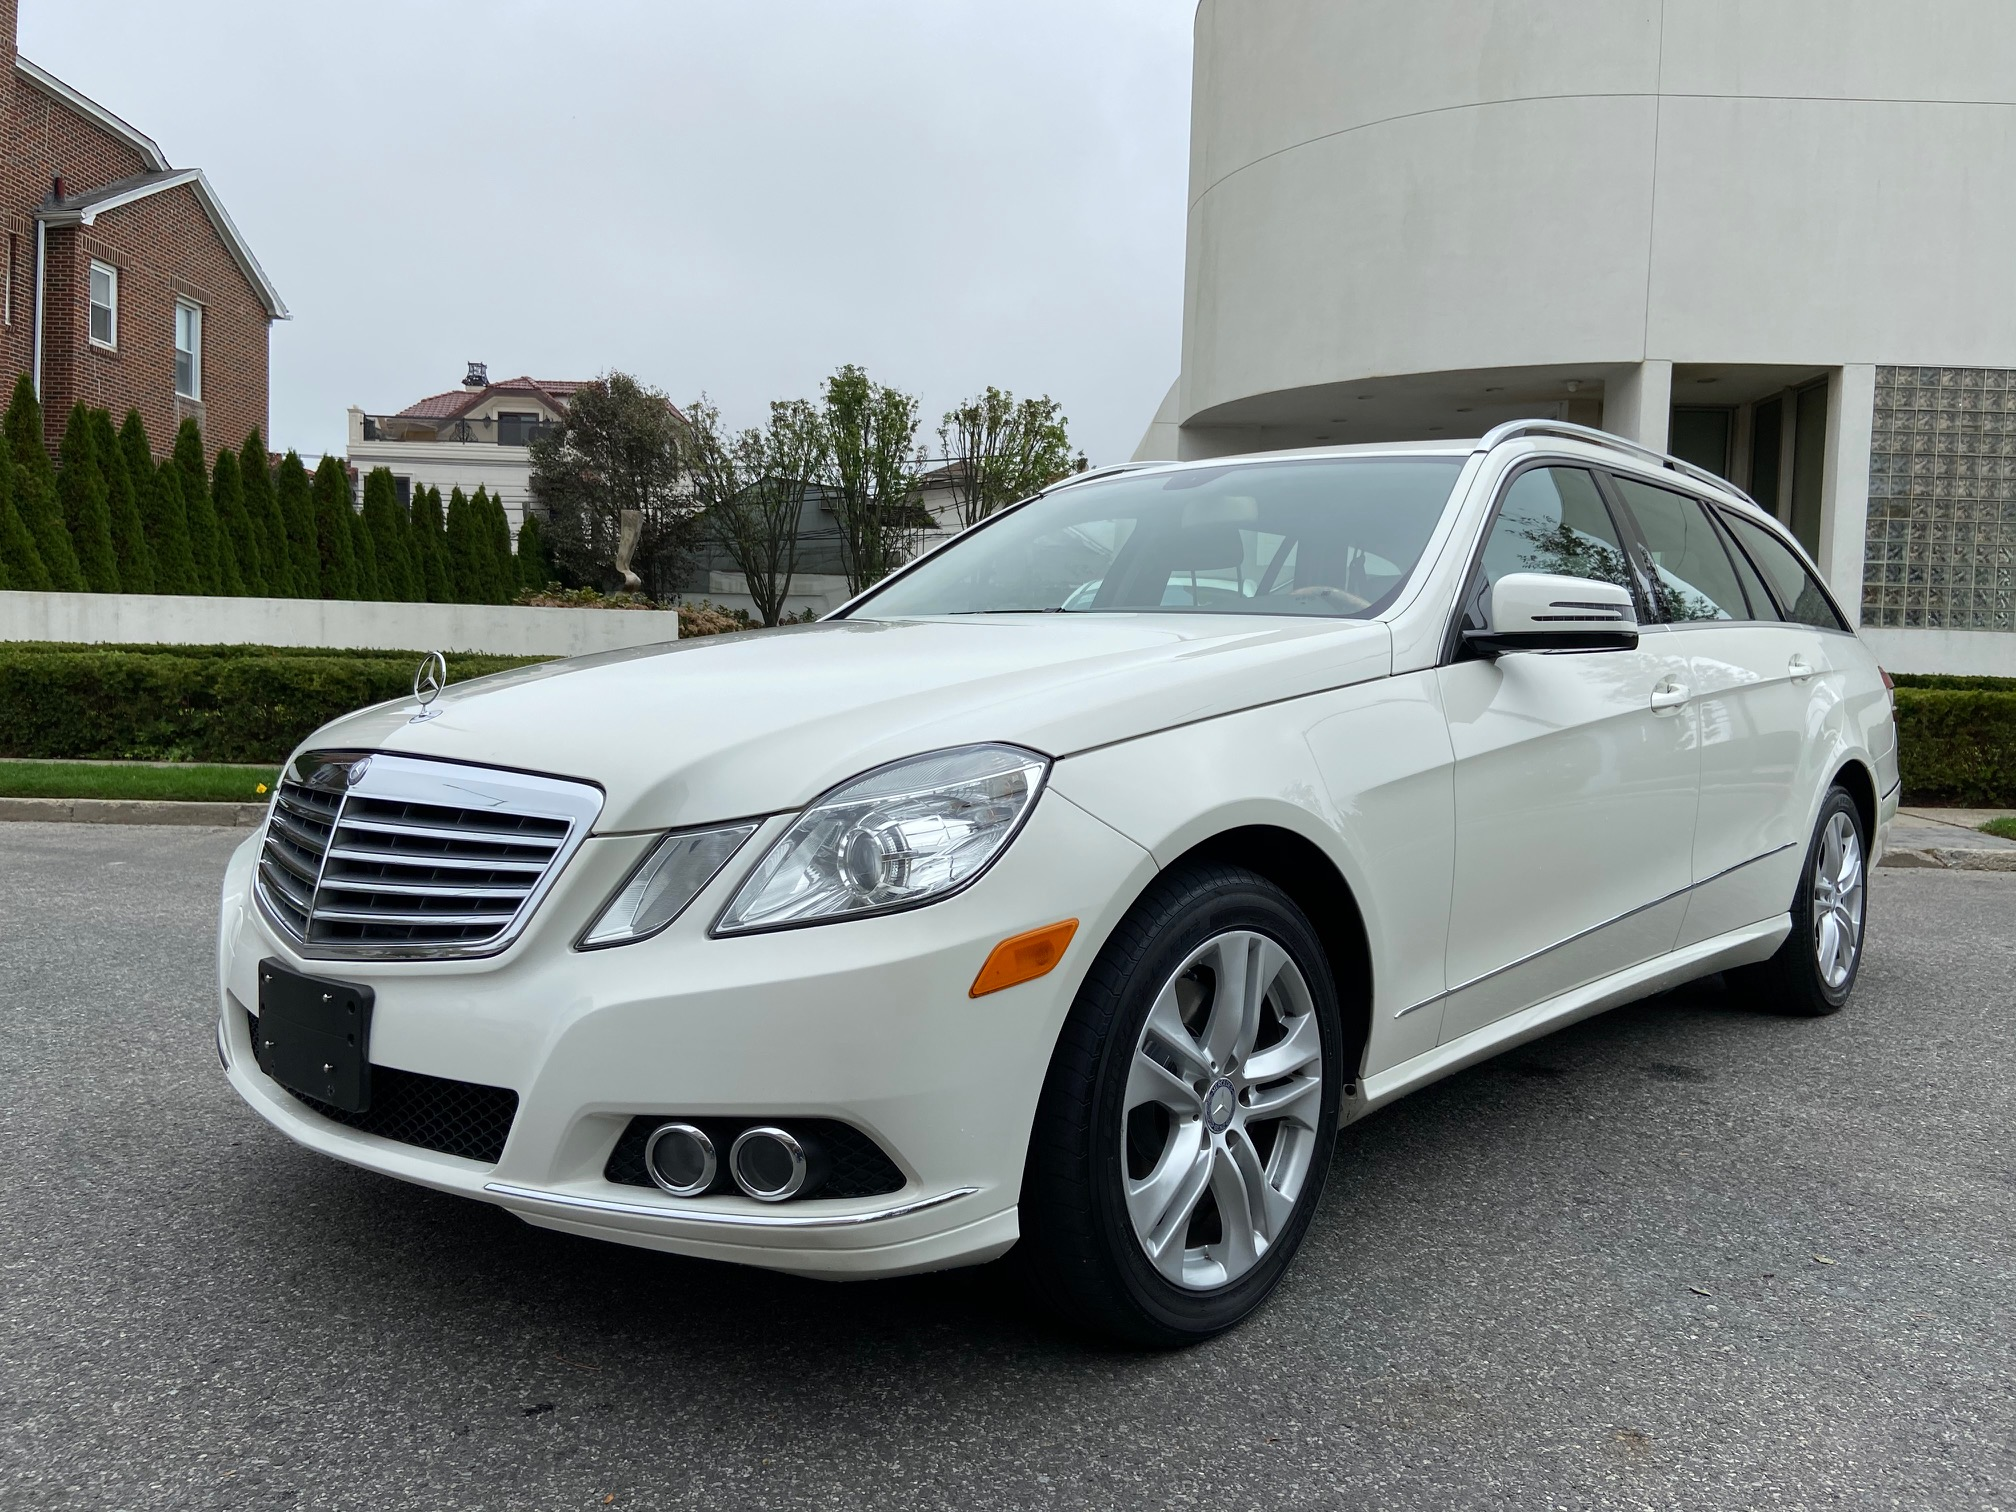 Used Car - 2011 Mercedes-Benz E350 Luxury 4MATIC AWD for Sale in Staten Island, NY